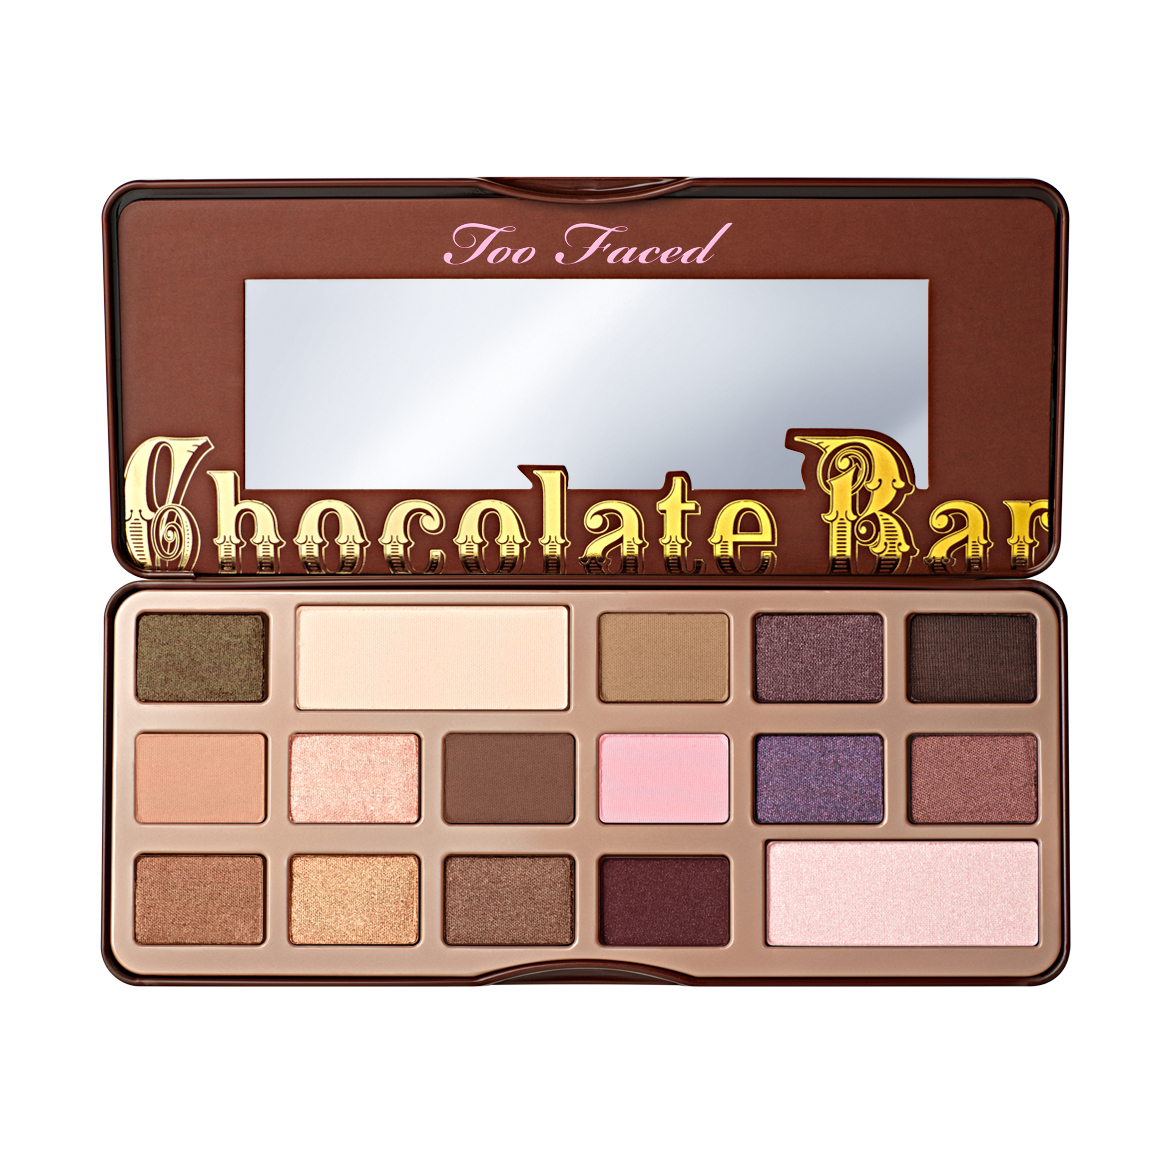 Bar Eyeshadow Palette - Too Faced